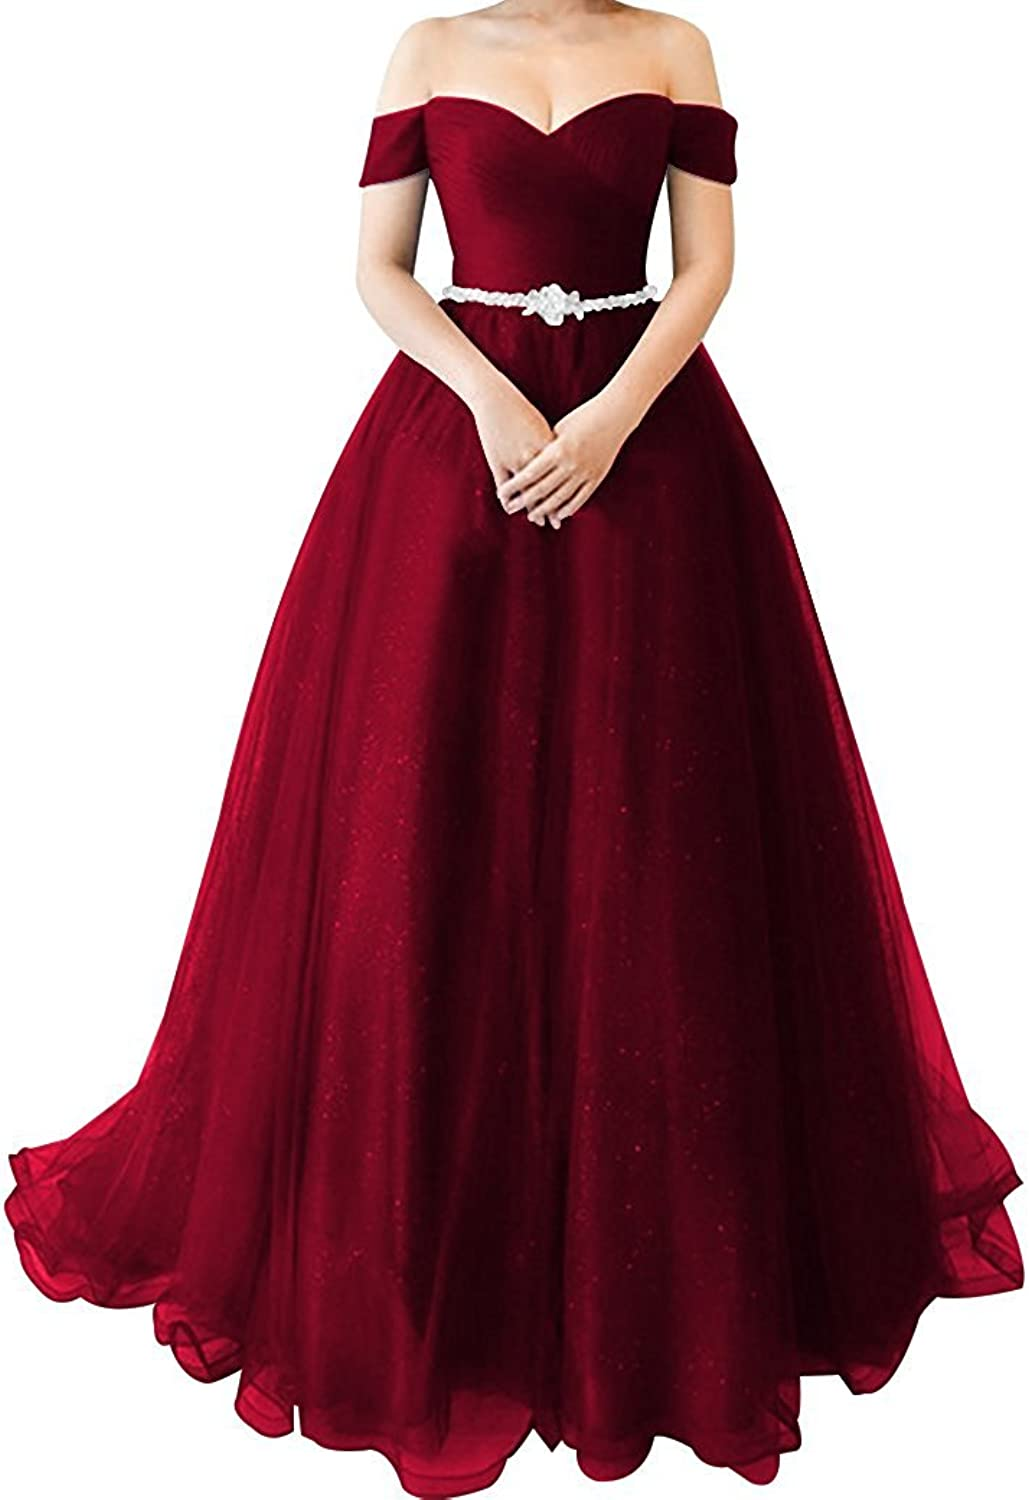 Luccatown Women's Off Shoulder Sweep Train Tulle Ball Gown Prom Dress Evening Gowns with Crystal Belt